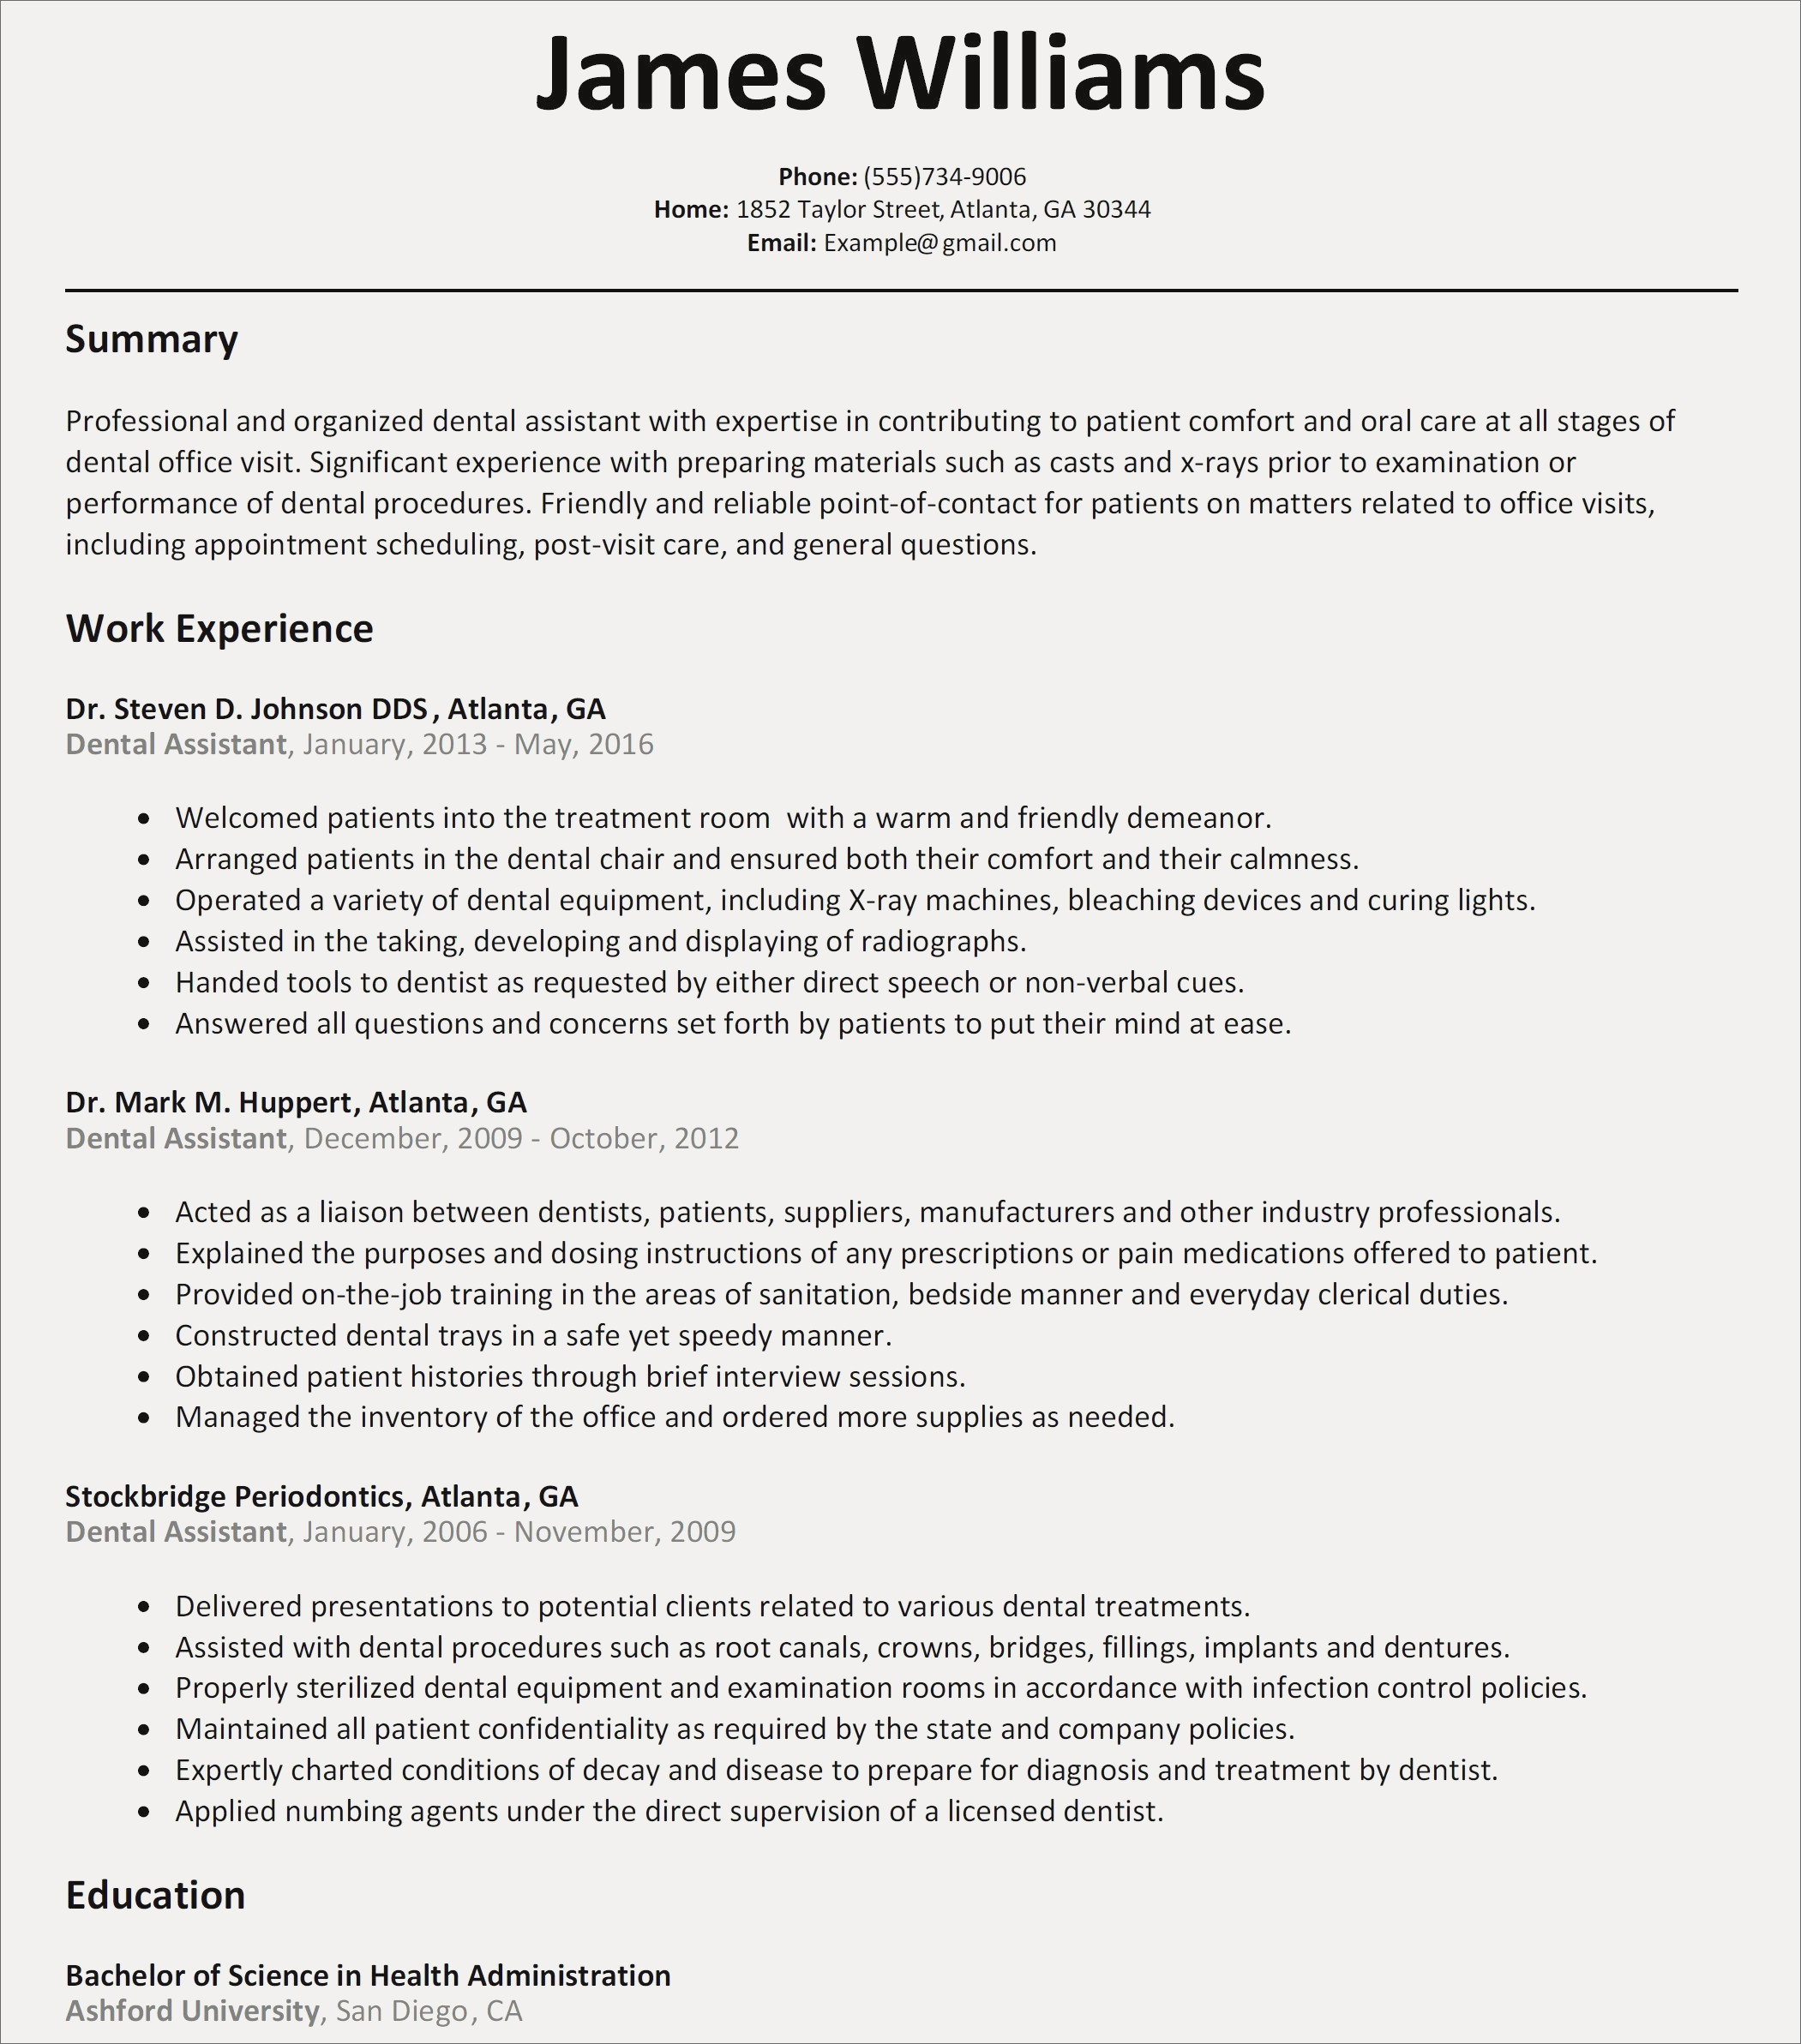 San Diego Resume - How to Make A Resume Cove Best How to Write A Cover Letter for